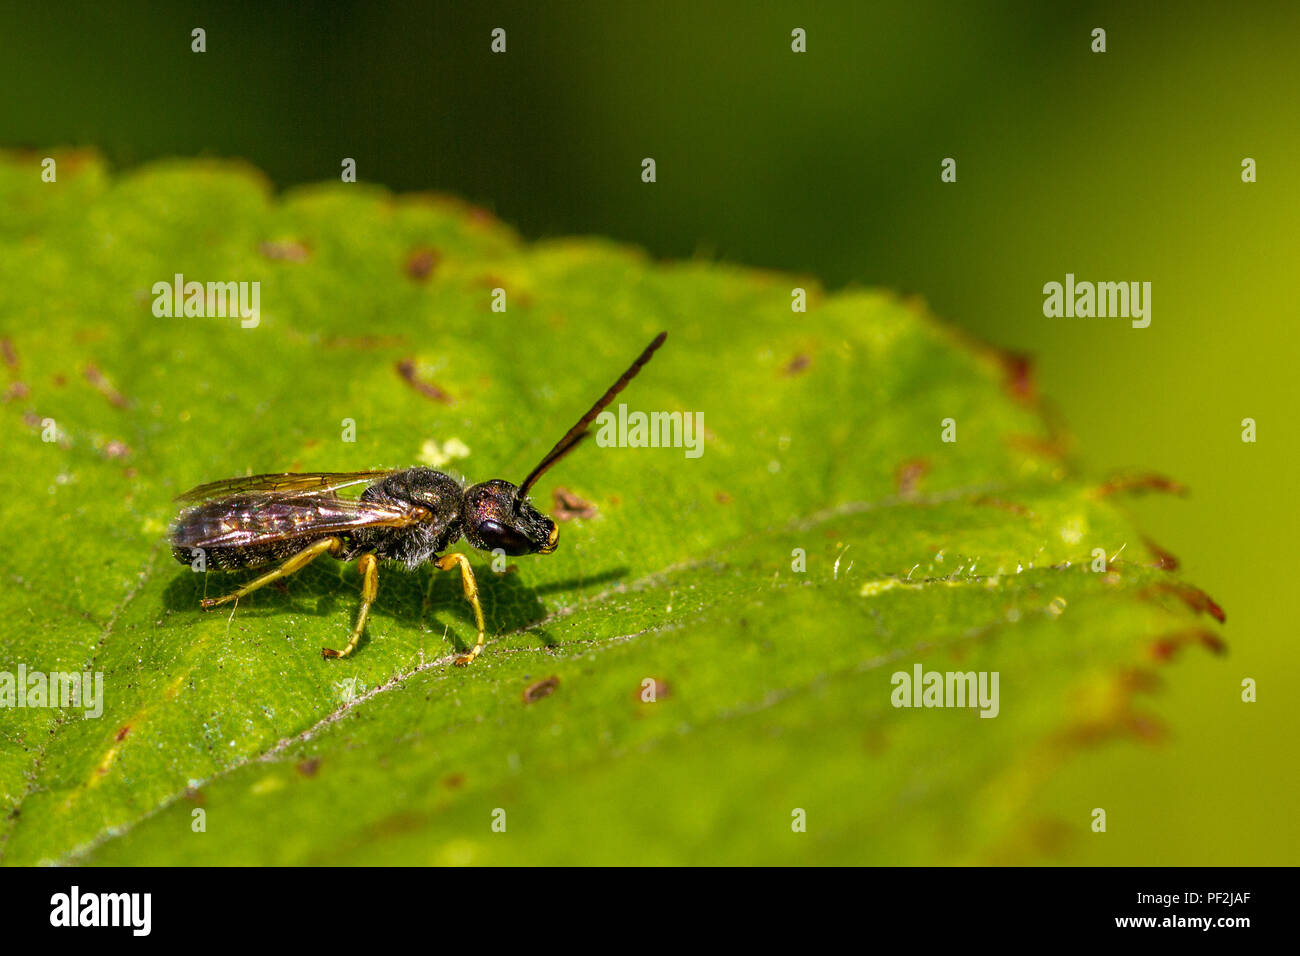 male Halictus tumulorum solitary bee perched on a leaf - Stock Image